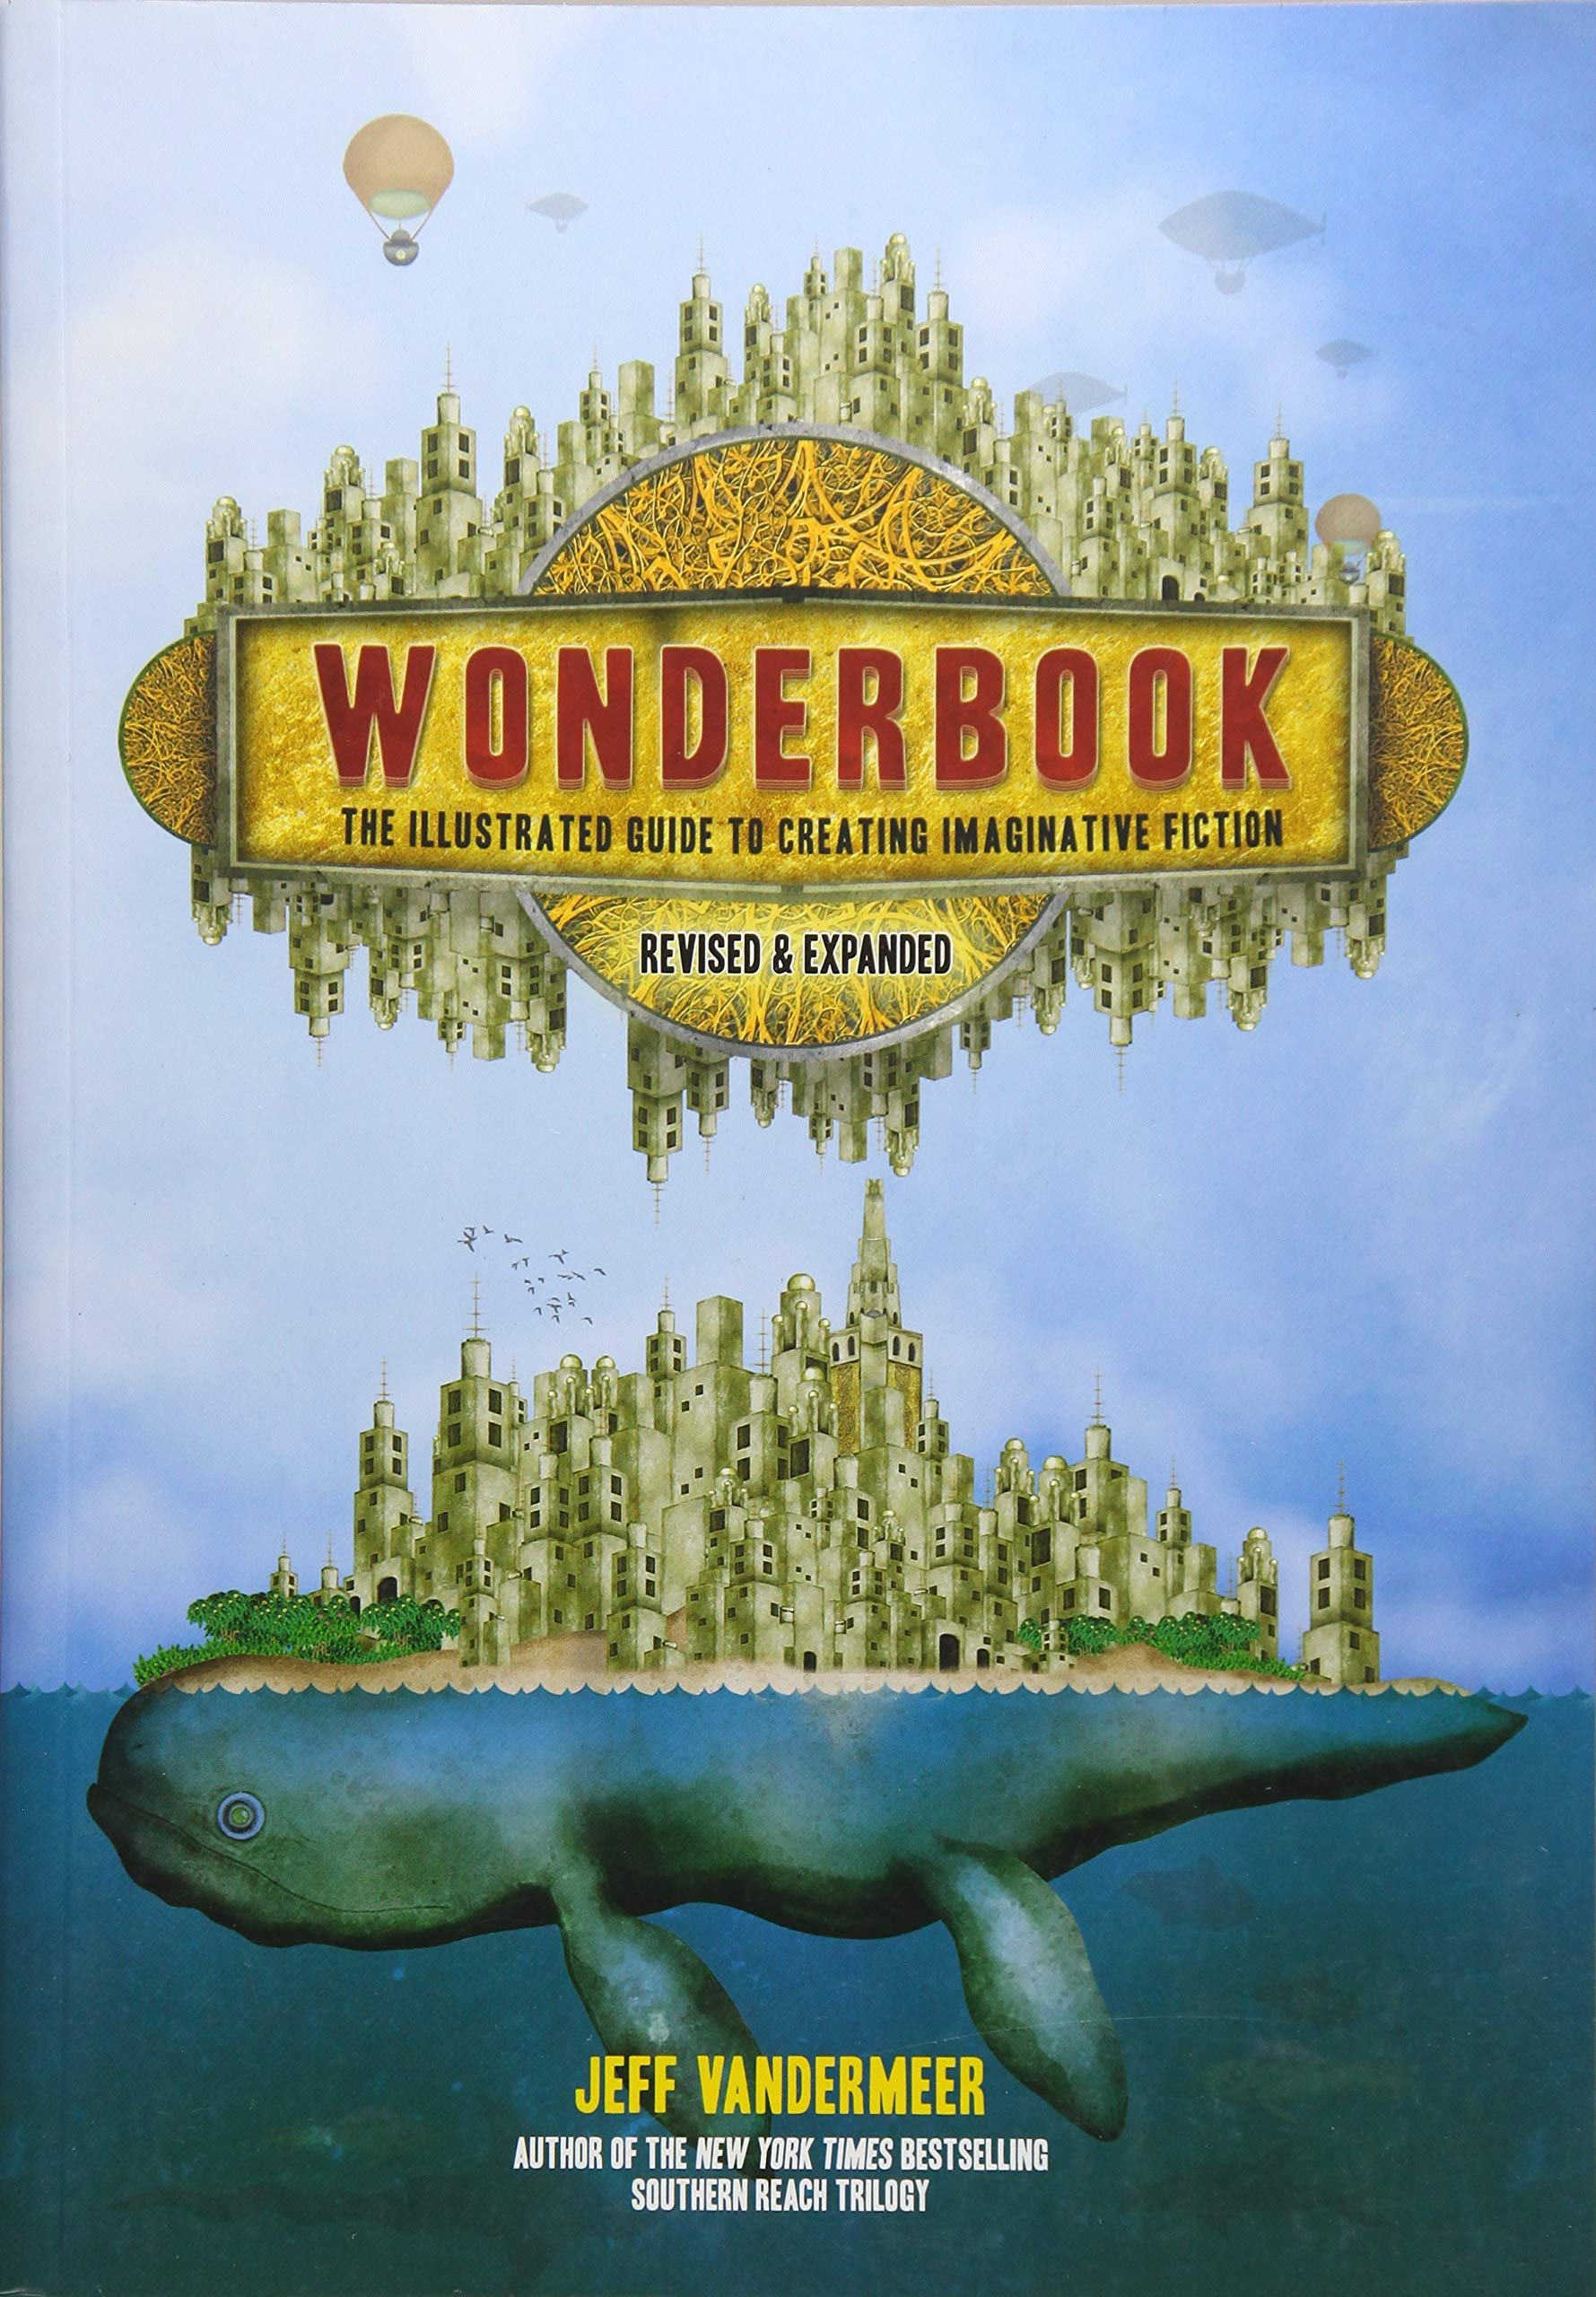 Wonderbook (Revised and Expanded): The Illustrated Guide to Creating  Imaginative Fiction: Jeff VanderMeer: 9781419729669: Amazon.com: Books